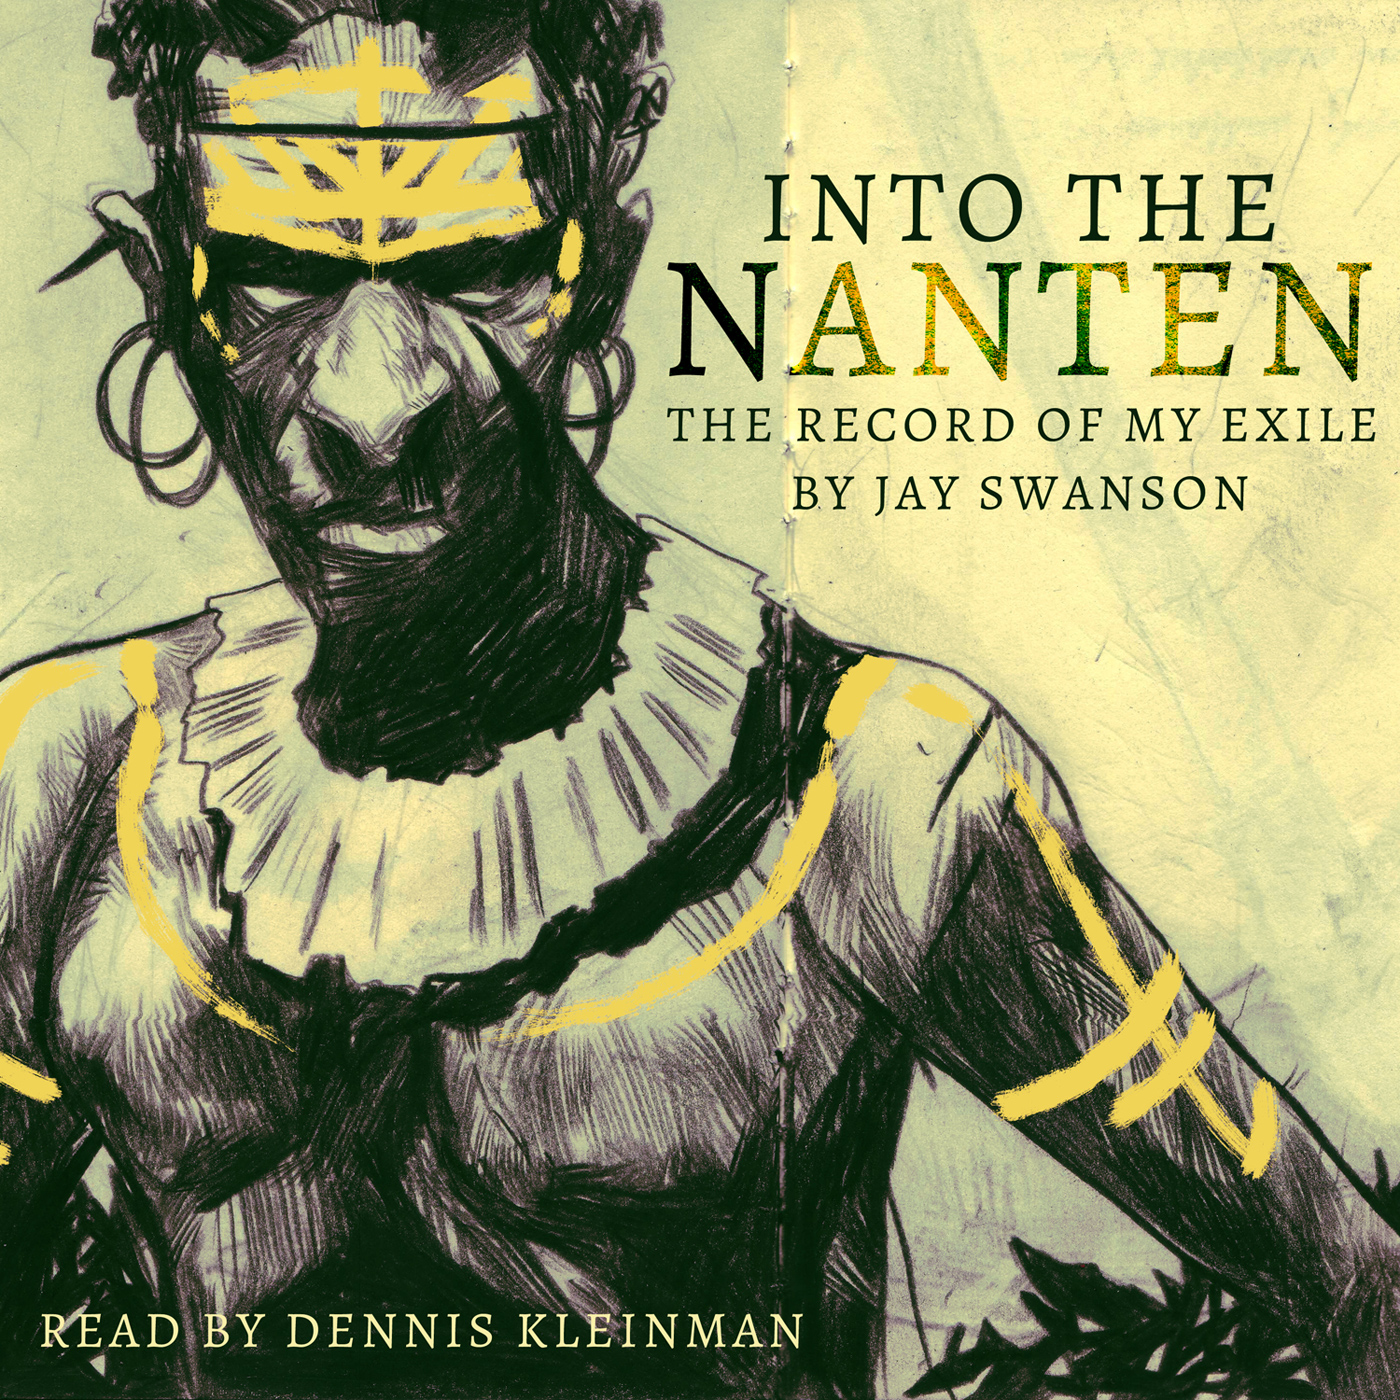 Into the Nanten: the Record of My Exile